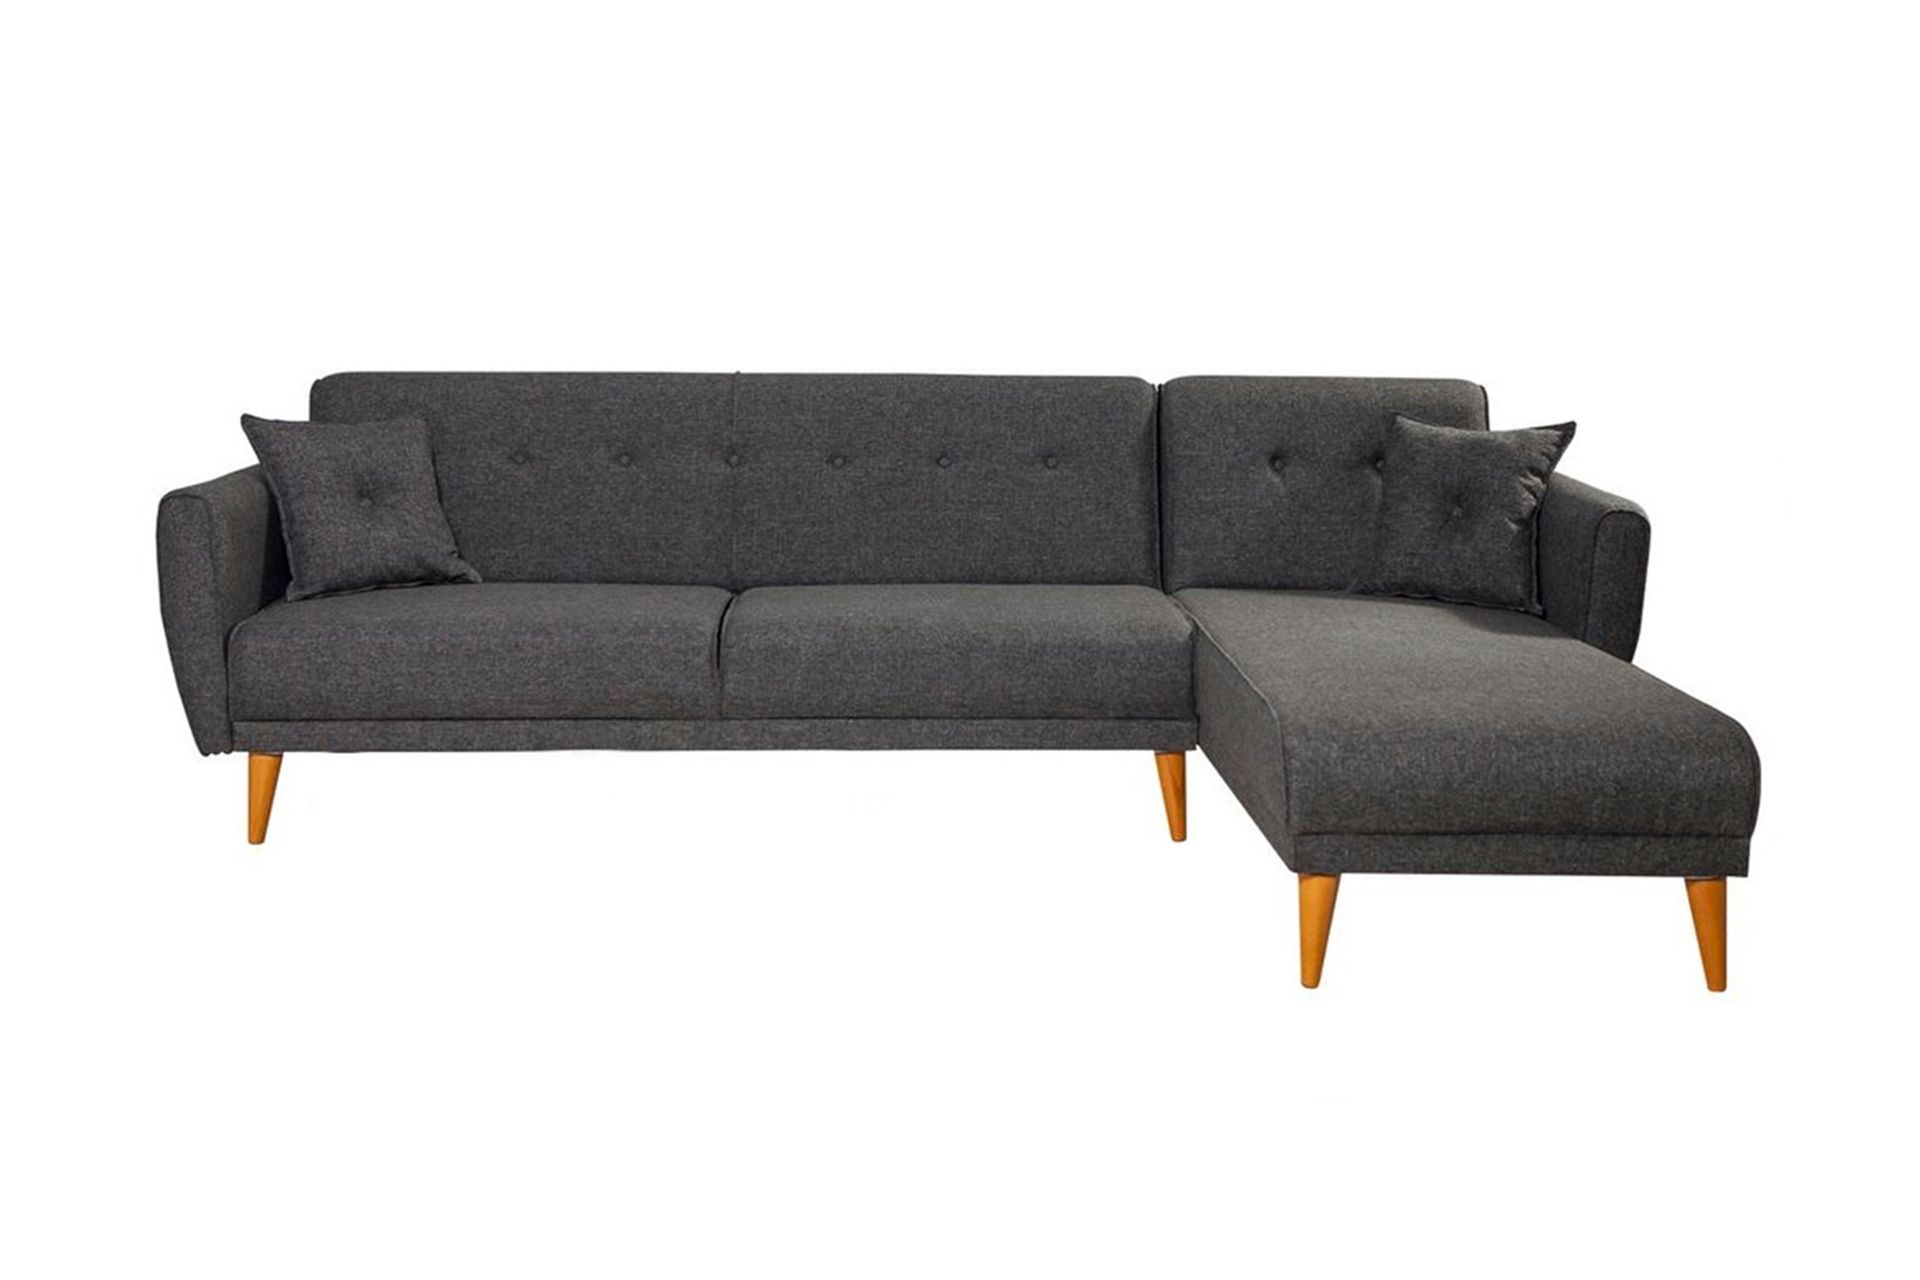 Aria Corner Chaise Sofa Bed, Right, Charcoal